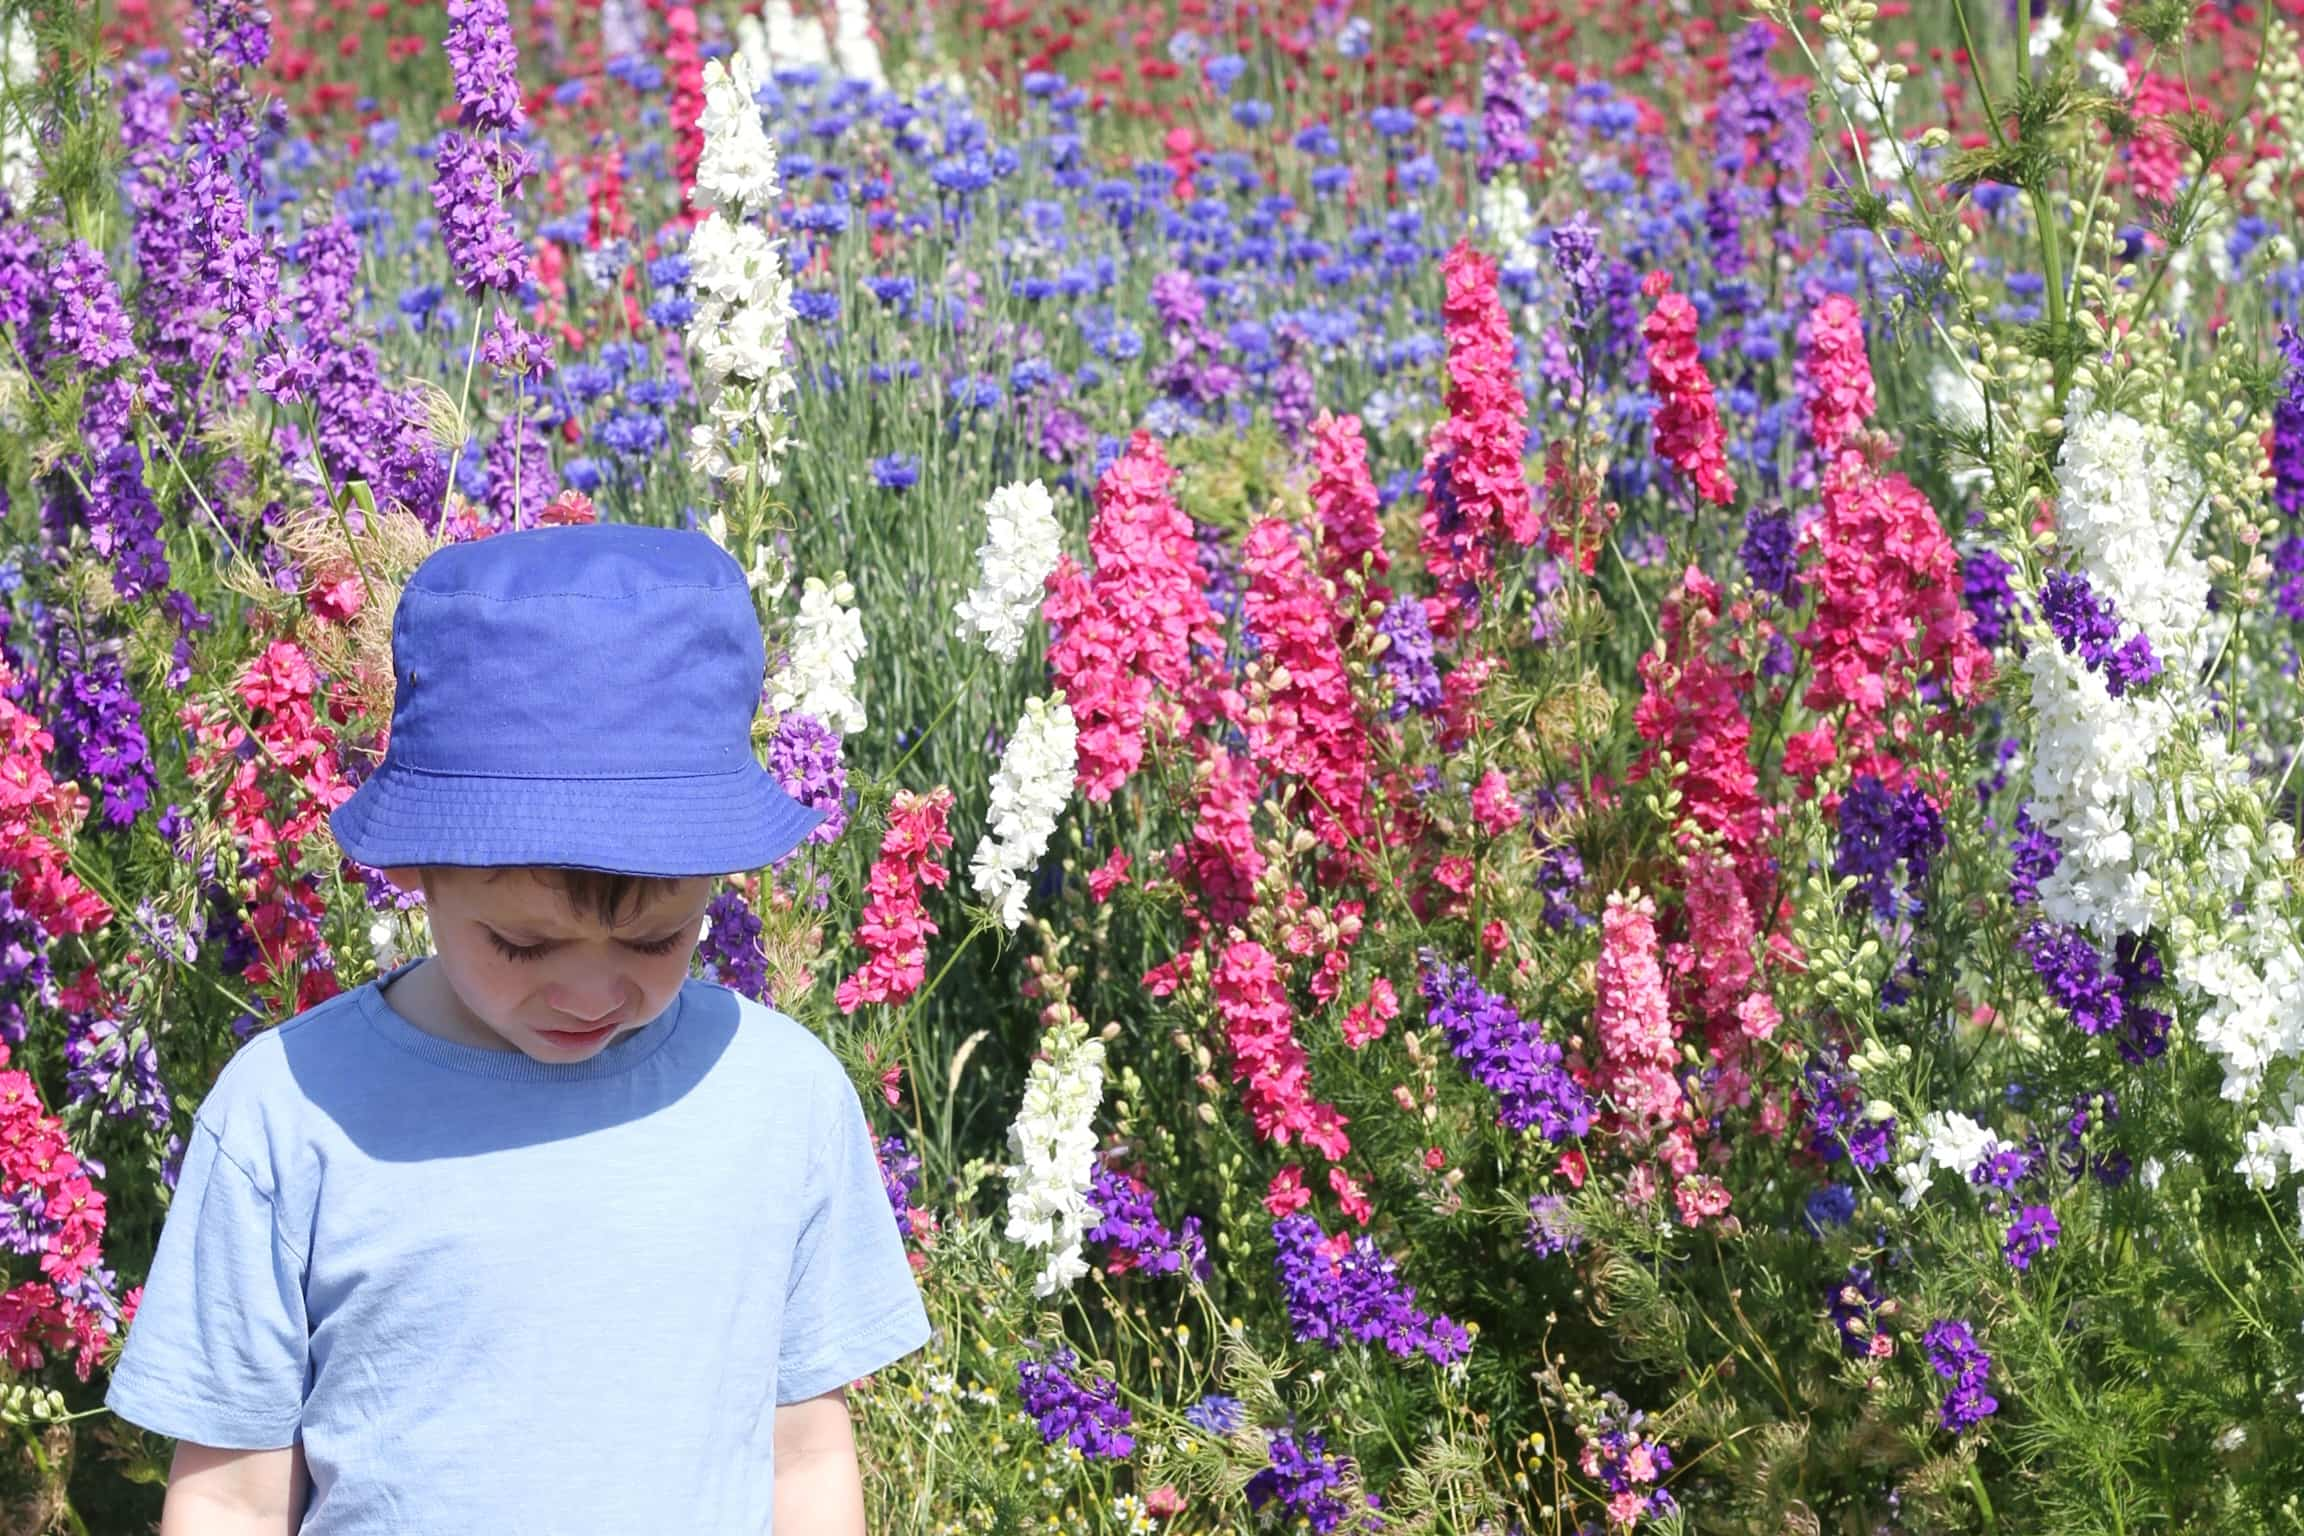 Small boy looking down, surrounded by pink, purple and white delphinium flowers